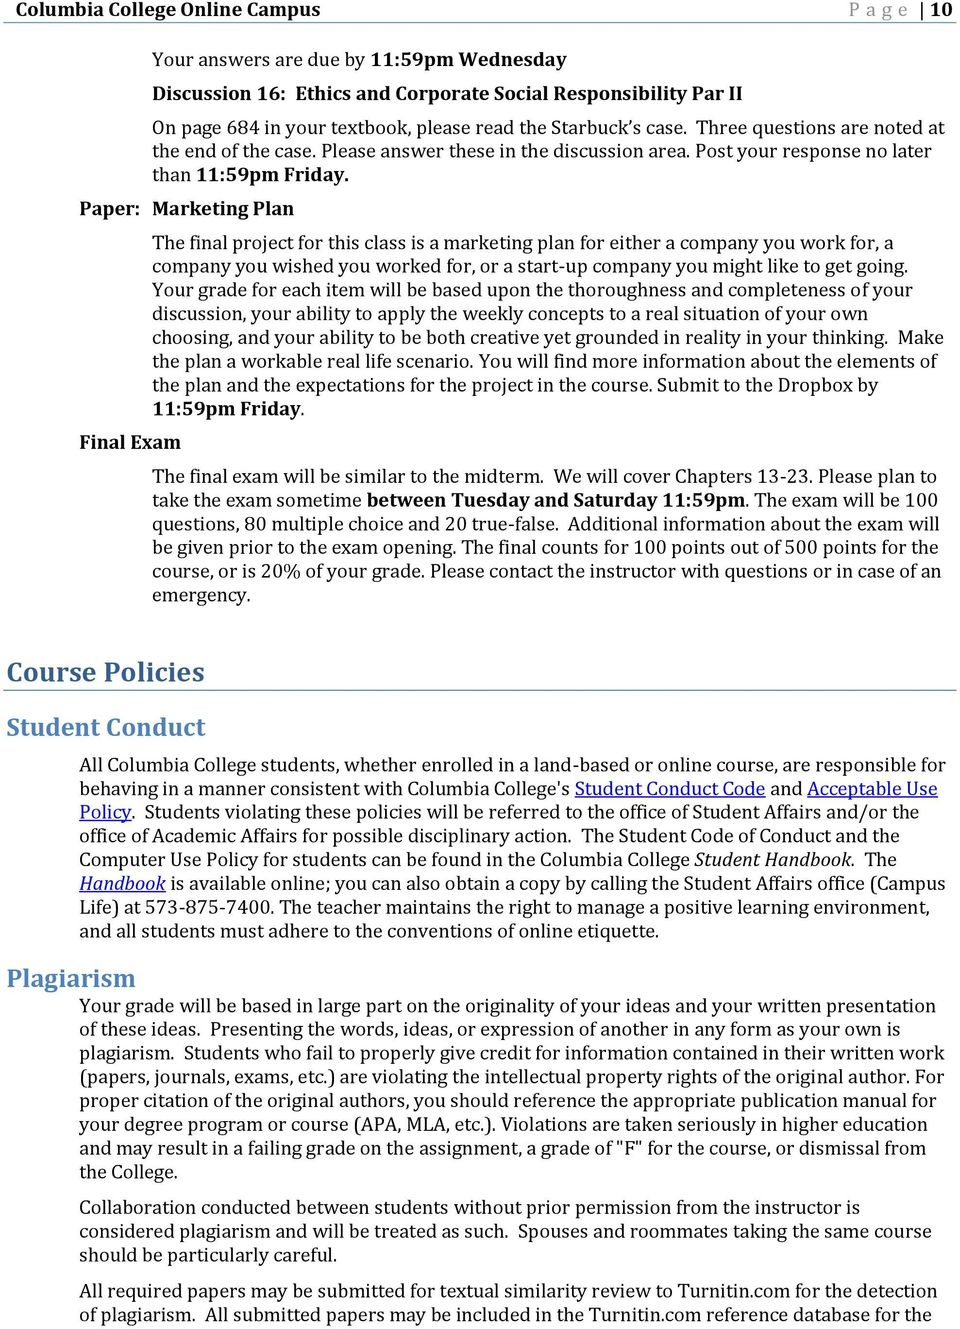 Paper: Marketing Plan Final Exam The final project for this class is a marketing plan for either a company you work for, a company you wished you worked for, or a start-up company you might like to